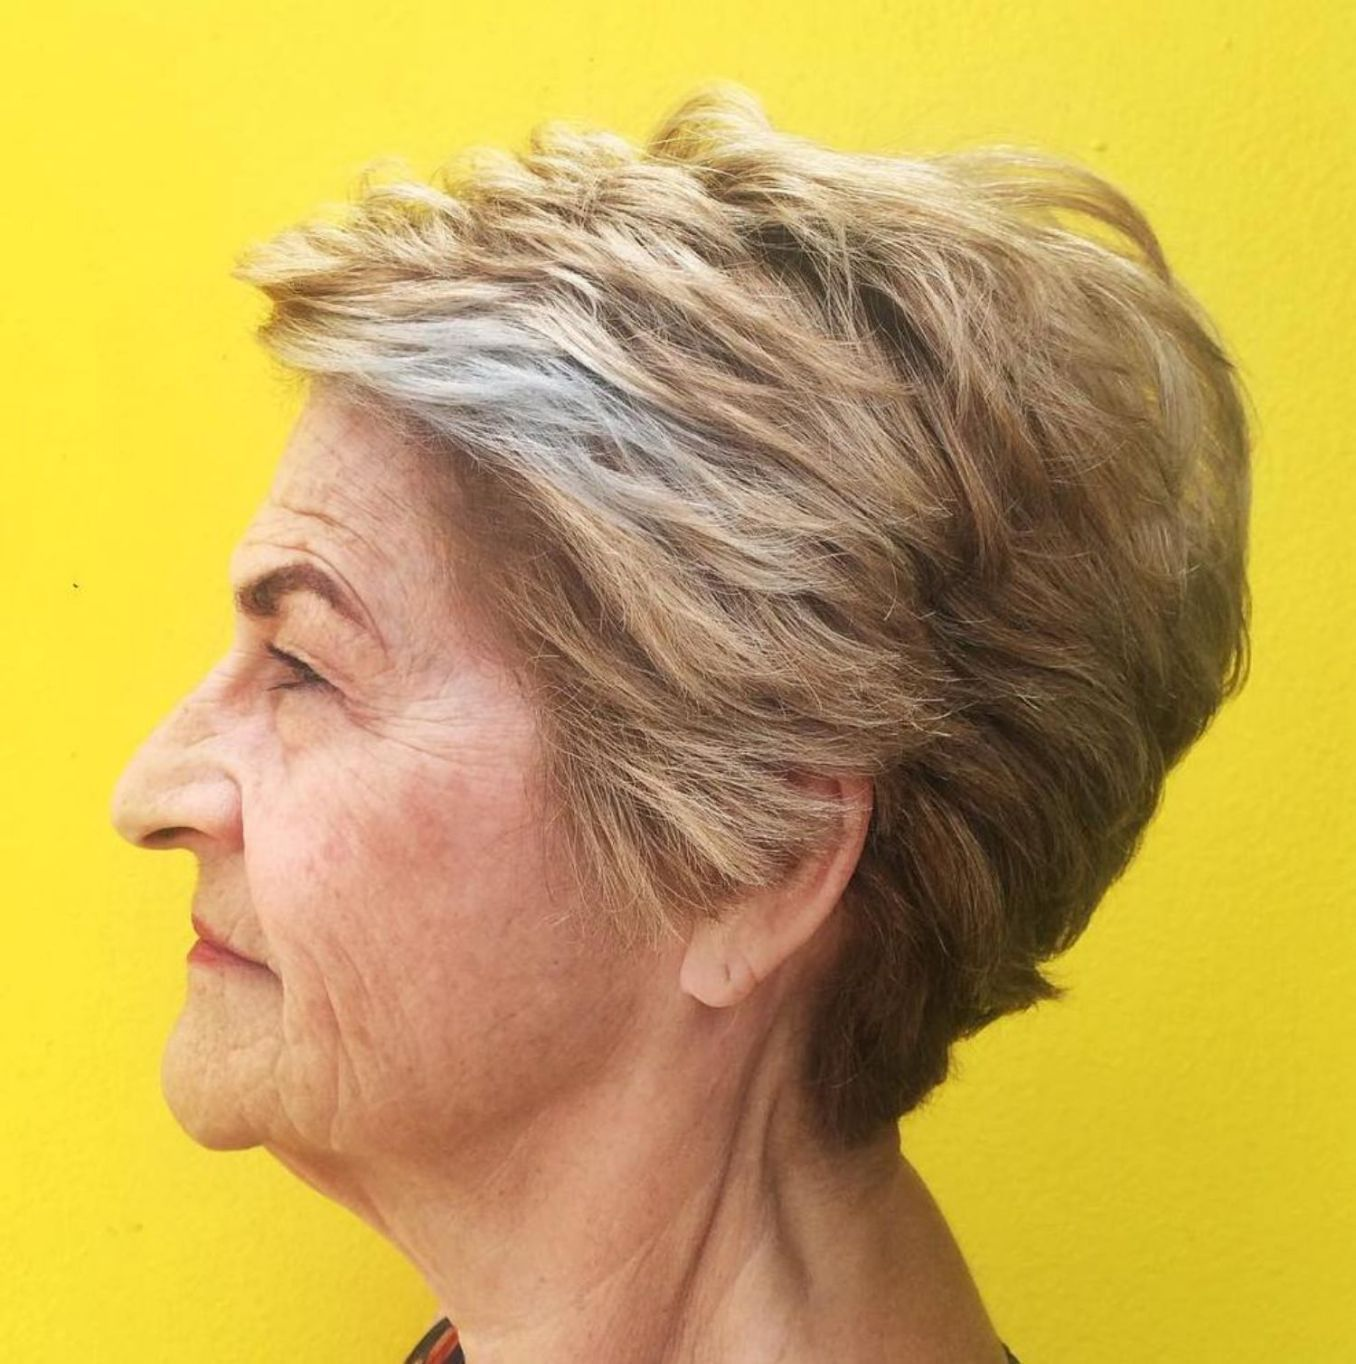 11 Types of Short Wavy Hairstyles for Women Over 50 (Updated 2021) 488e525cfc43d6f5885f84383828ea8a